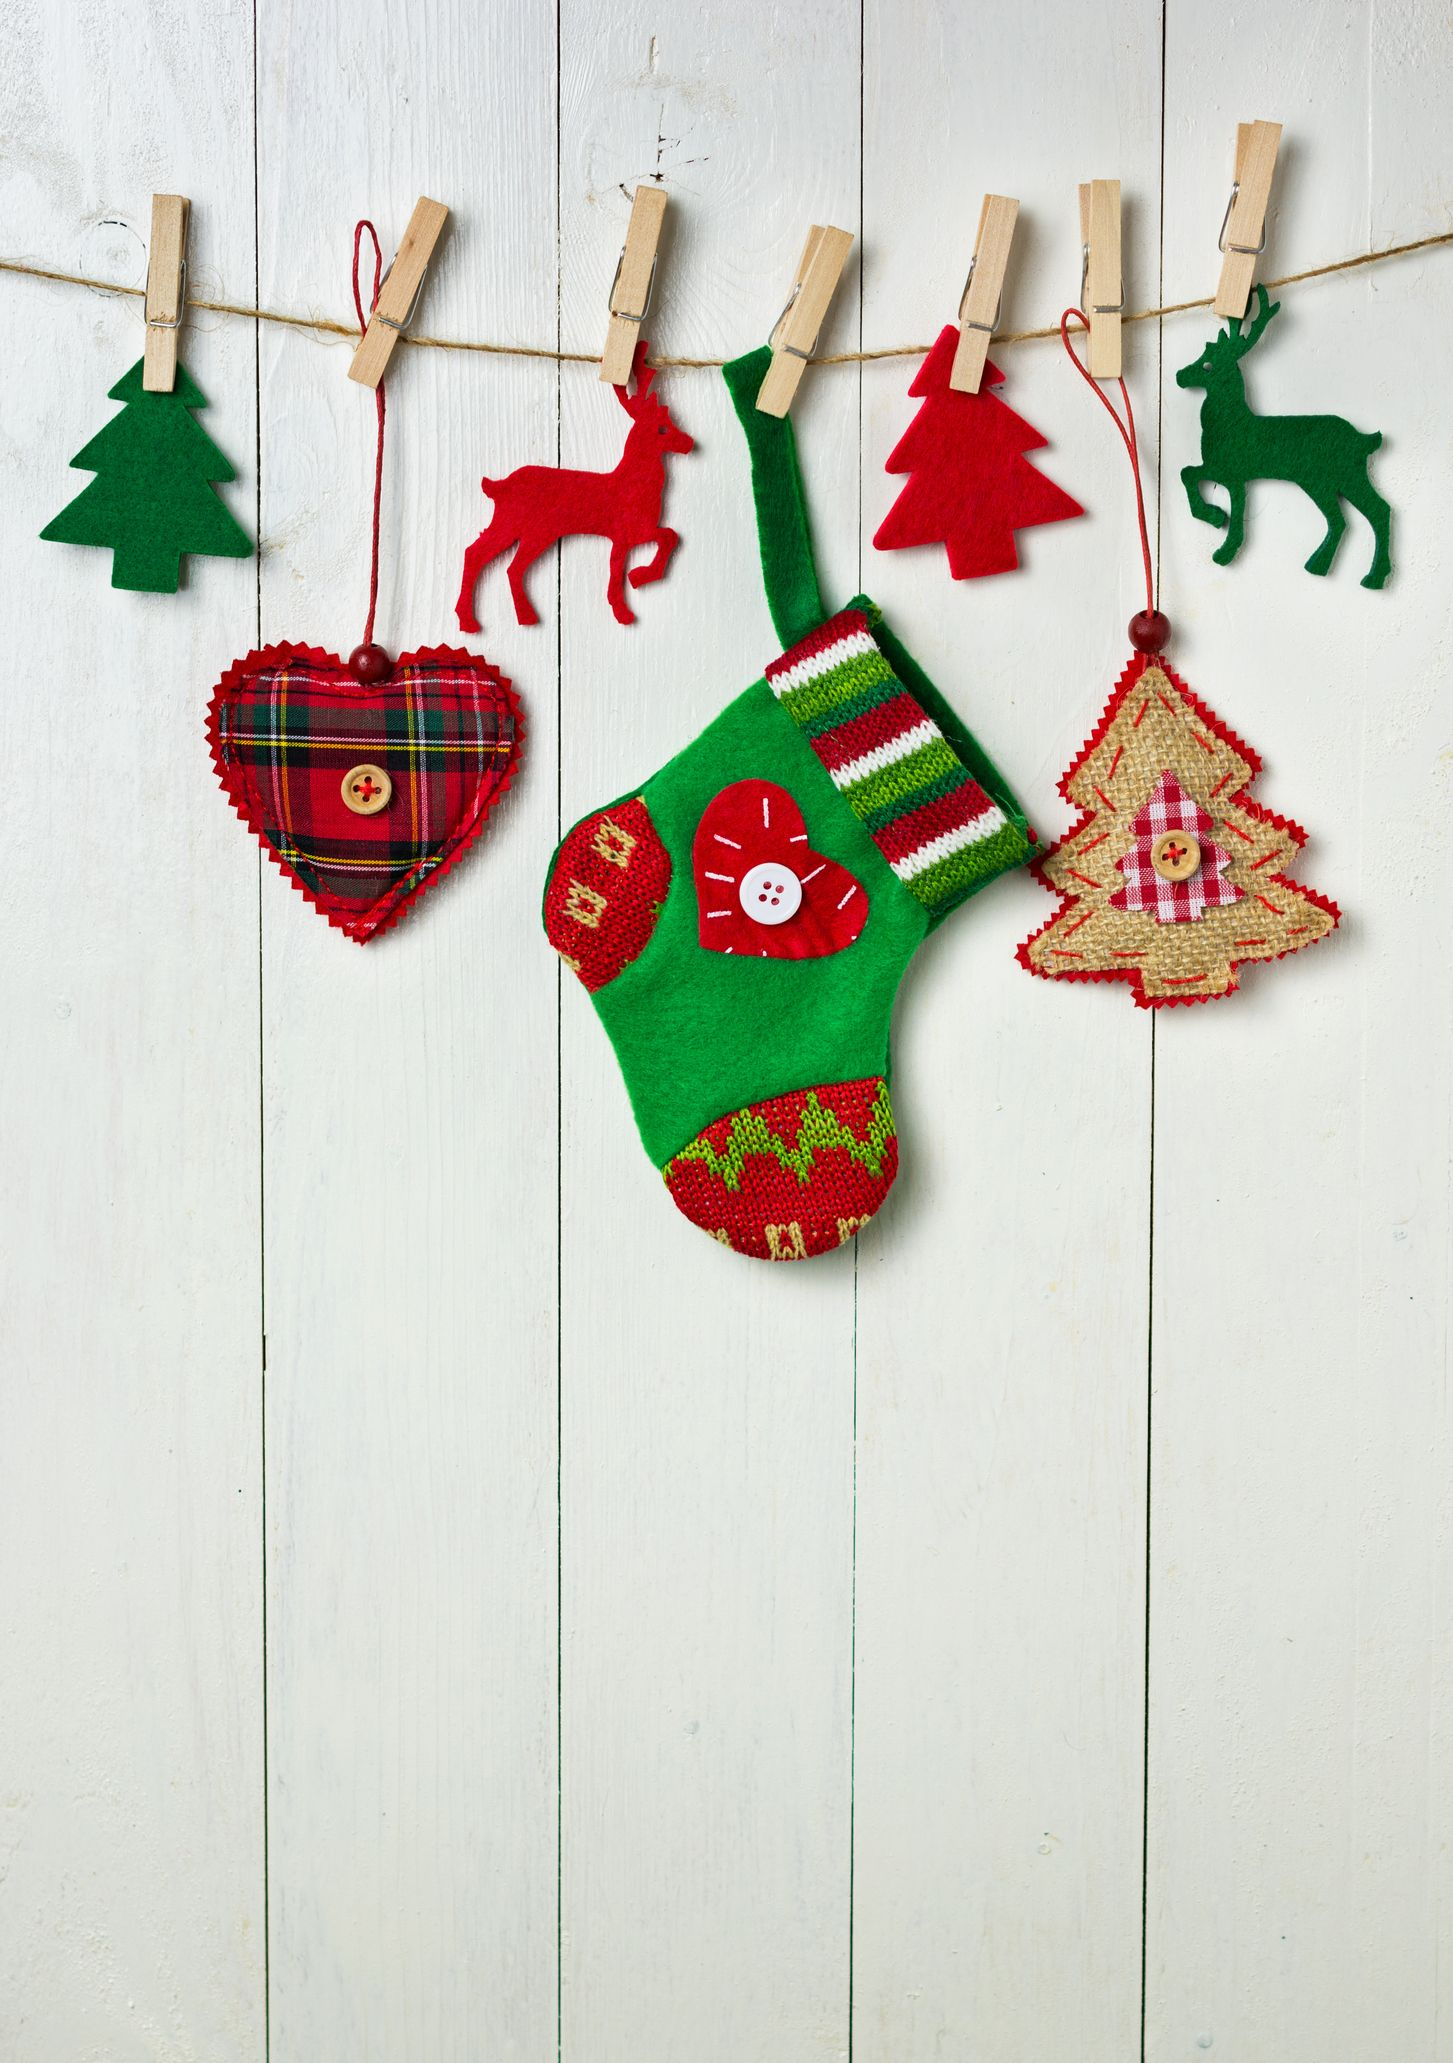 Christmas Decoration Hanging On White Wall